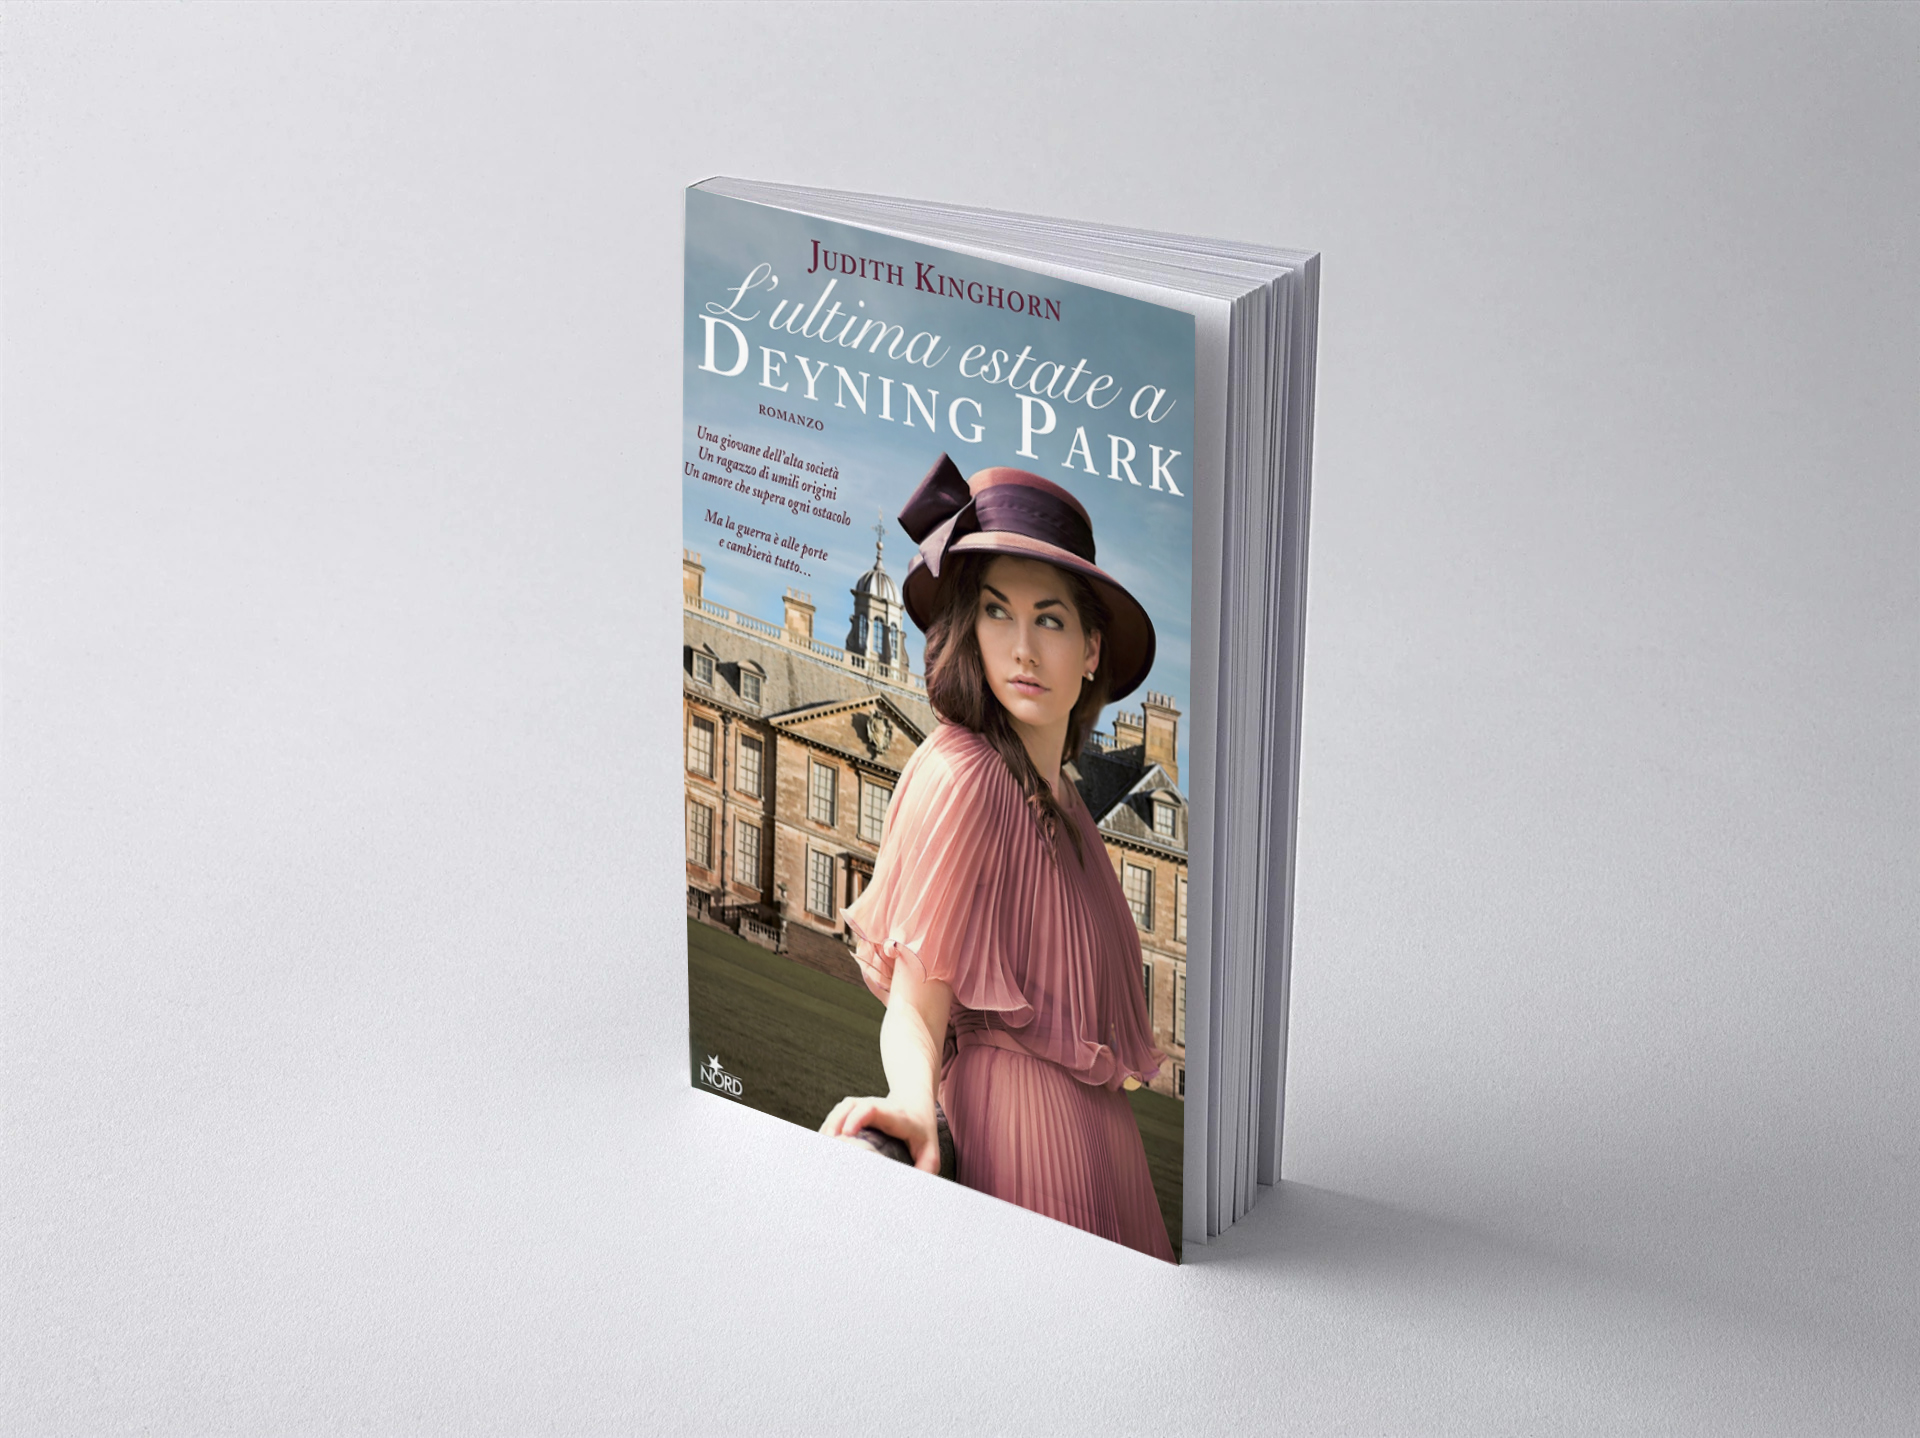 judith-kinghorn-dayning-park-book-cover.jpg